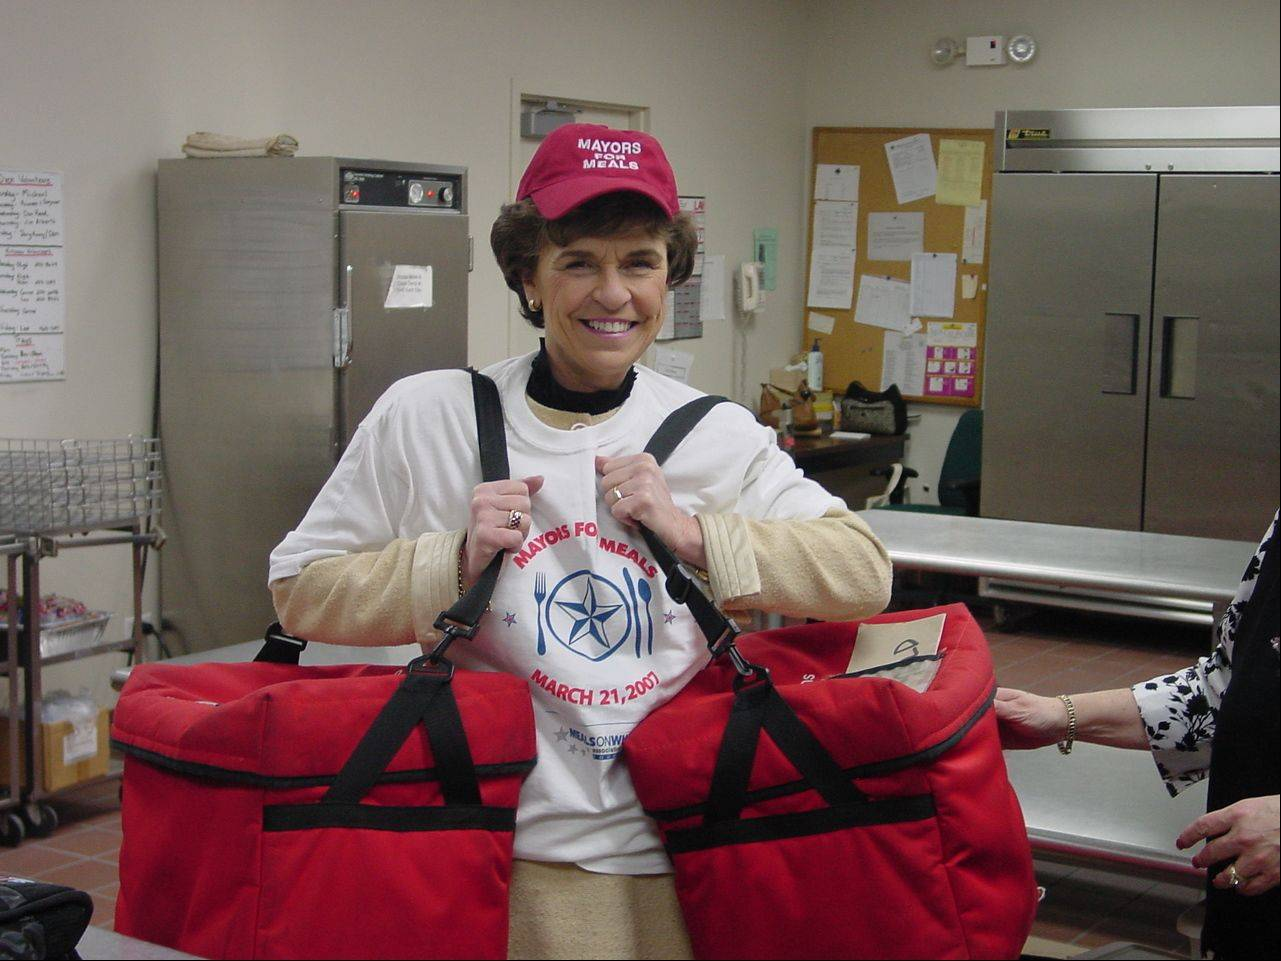 Arlene Mulder gets geared up to deliver meals to seniors on Mayors for Meals Day, March 21, 2007. The national day was set aside to raise awareness of senior hunger.